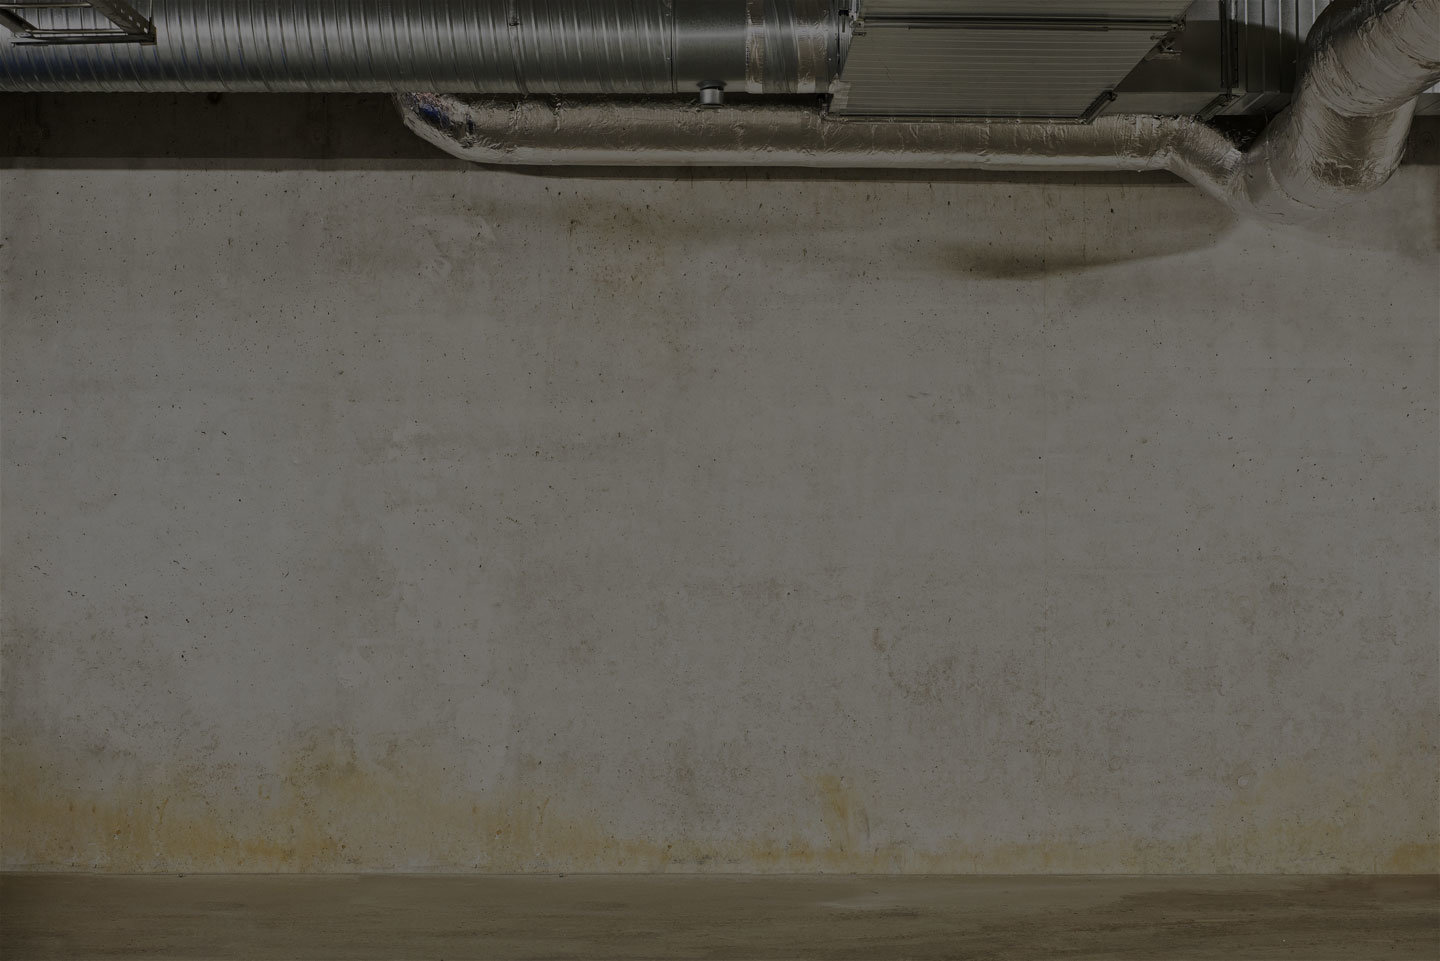 The Basic Waterproofing Co. - water remediation and structural repair solutions